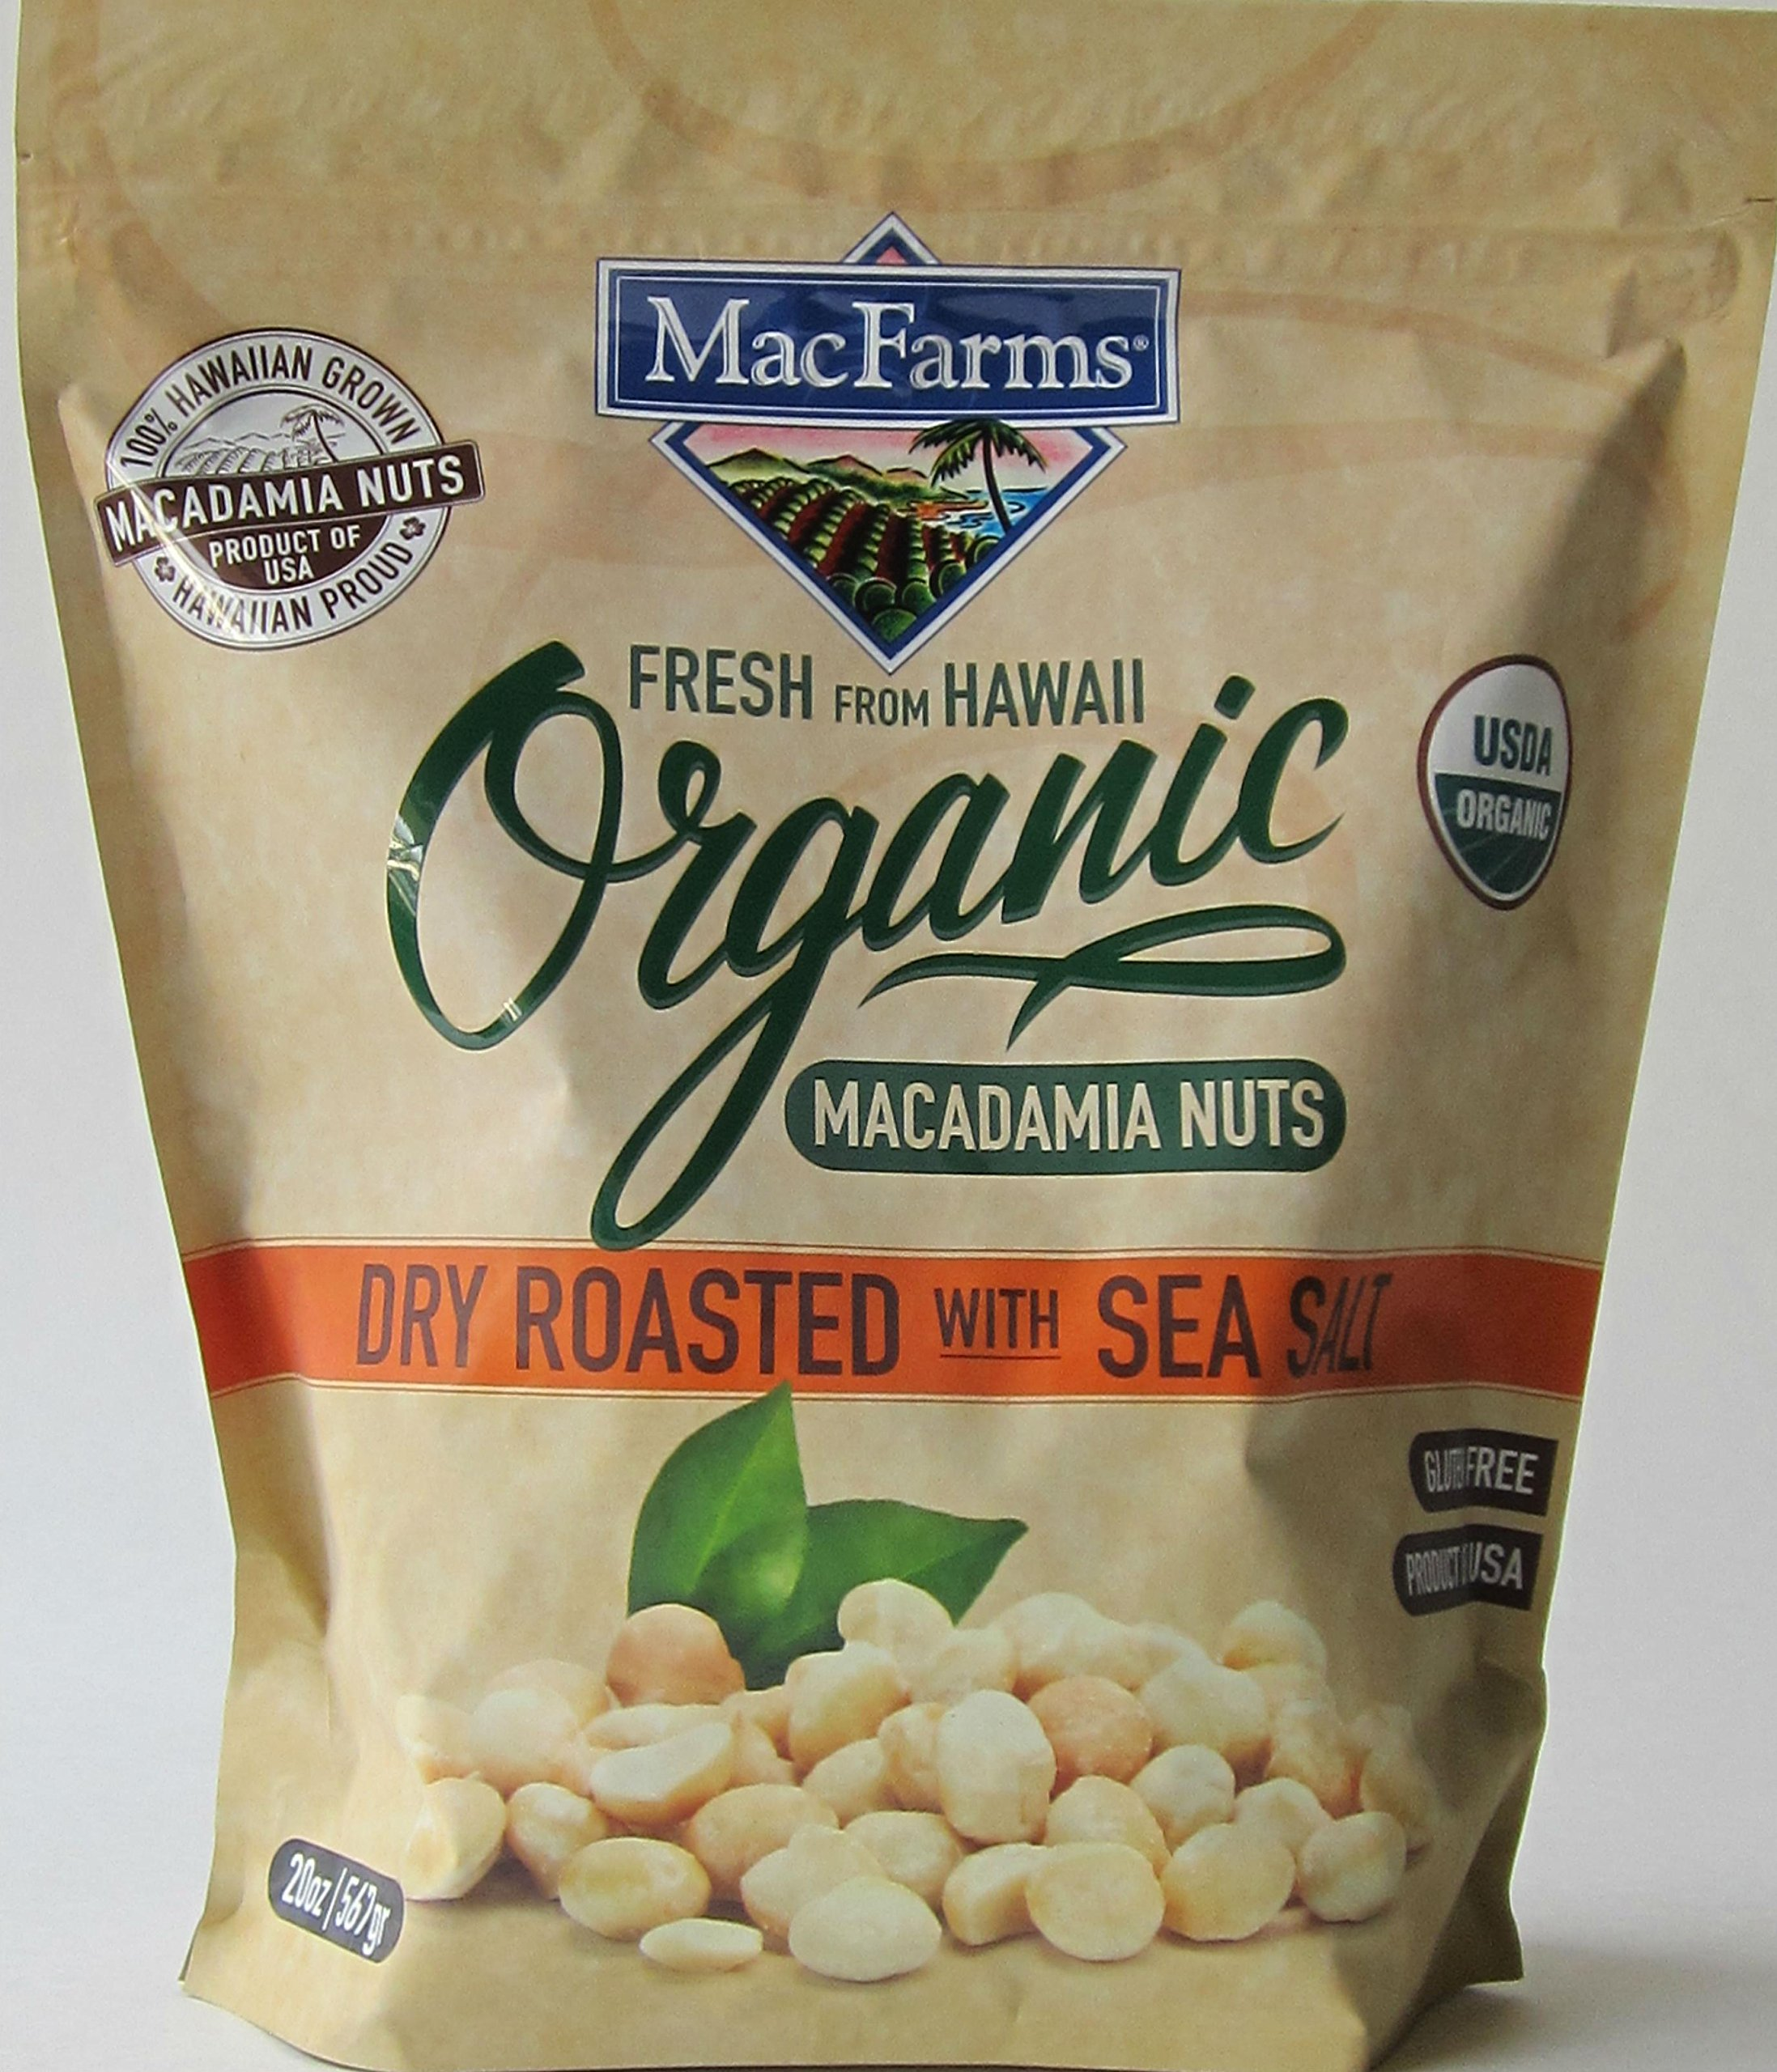 MacFarms Organic Dry Roasted Macadamia Nuts with Sea Salt  20oz Bag